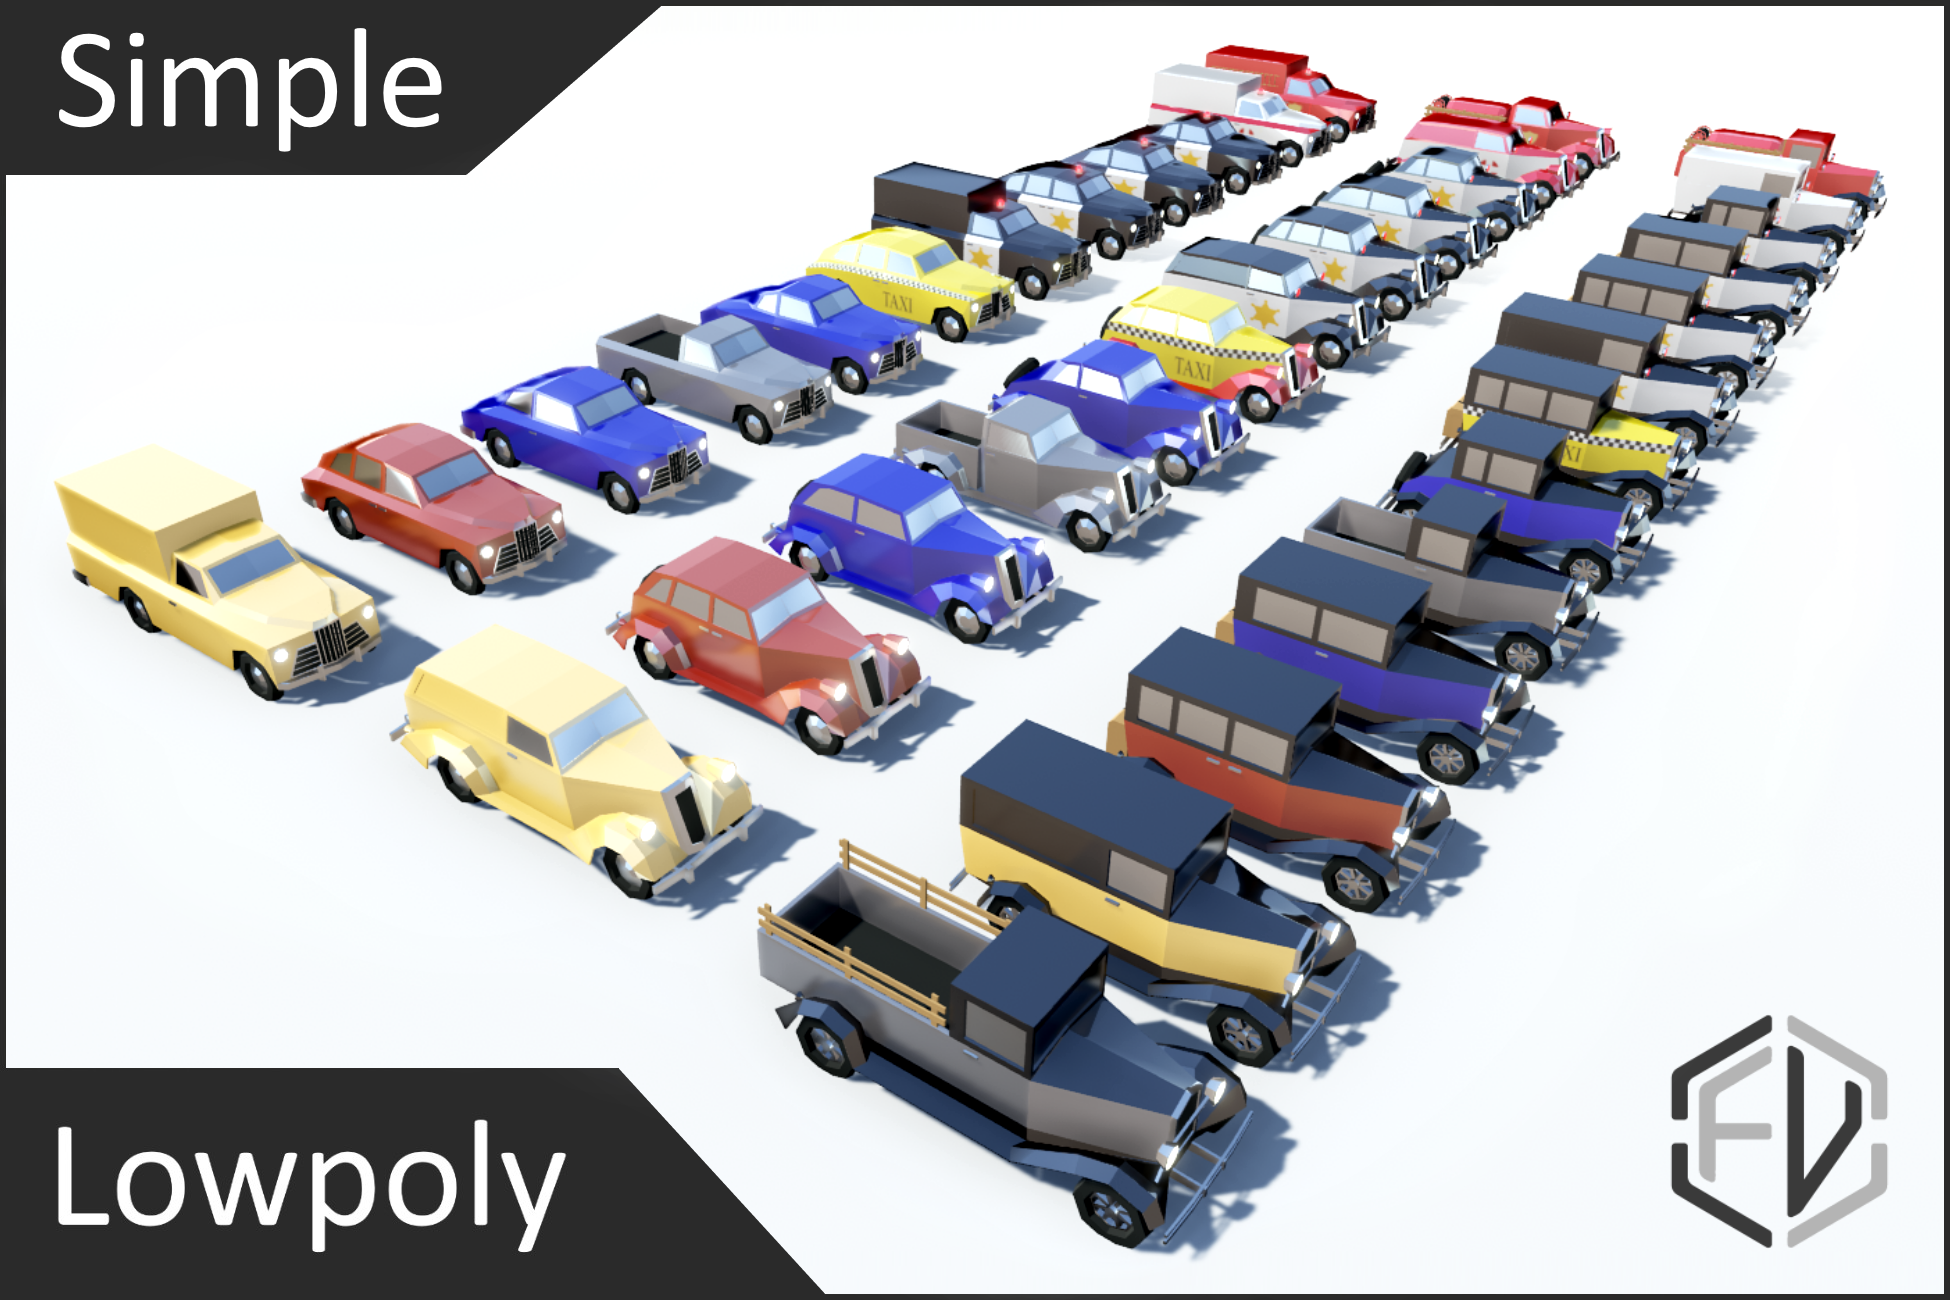 Lowpoly Simple Vintage Car Pack